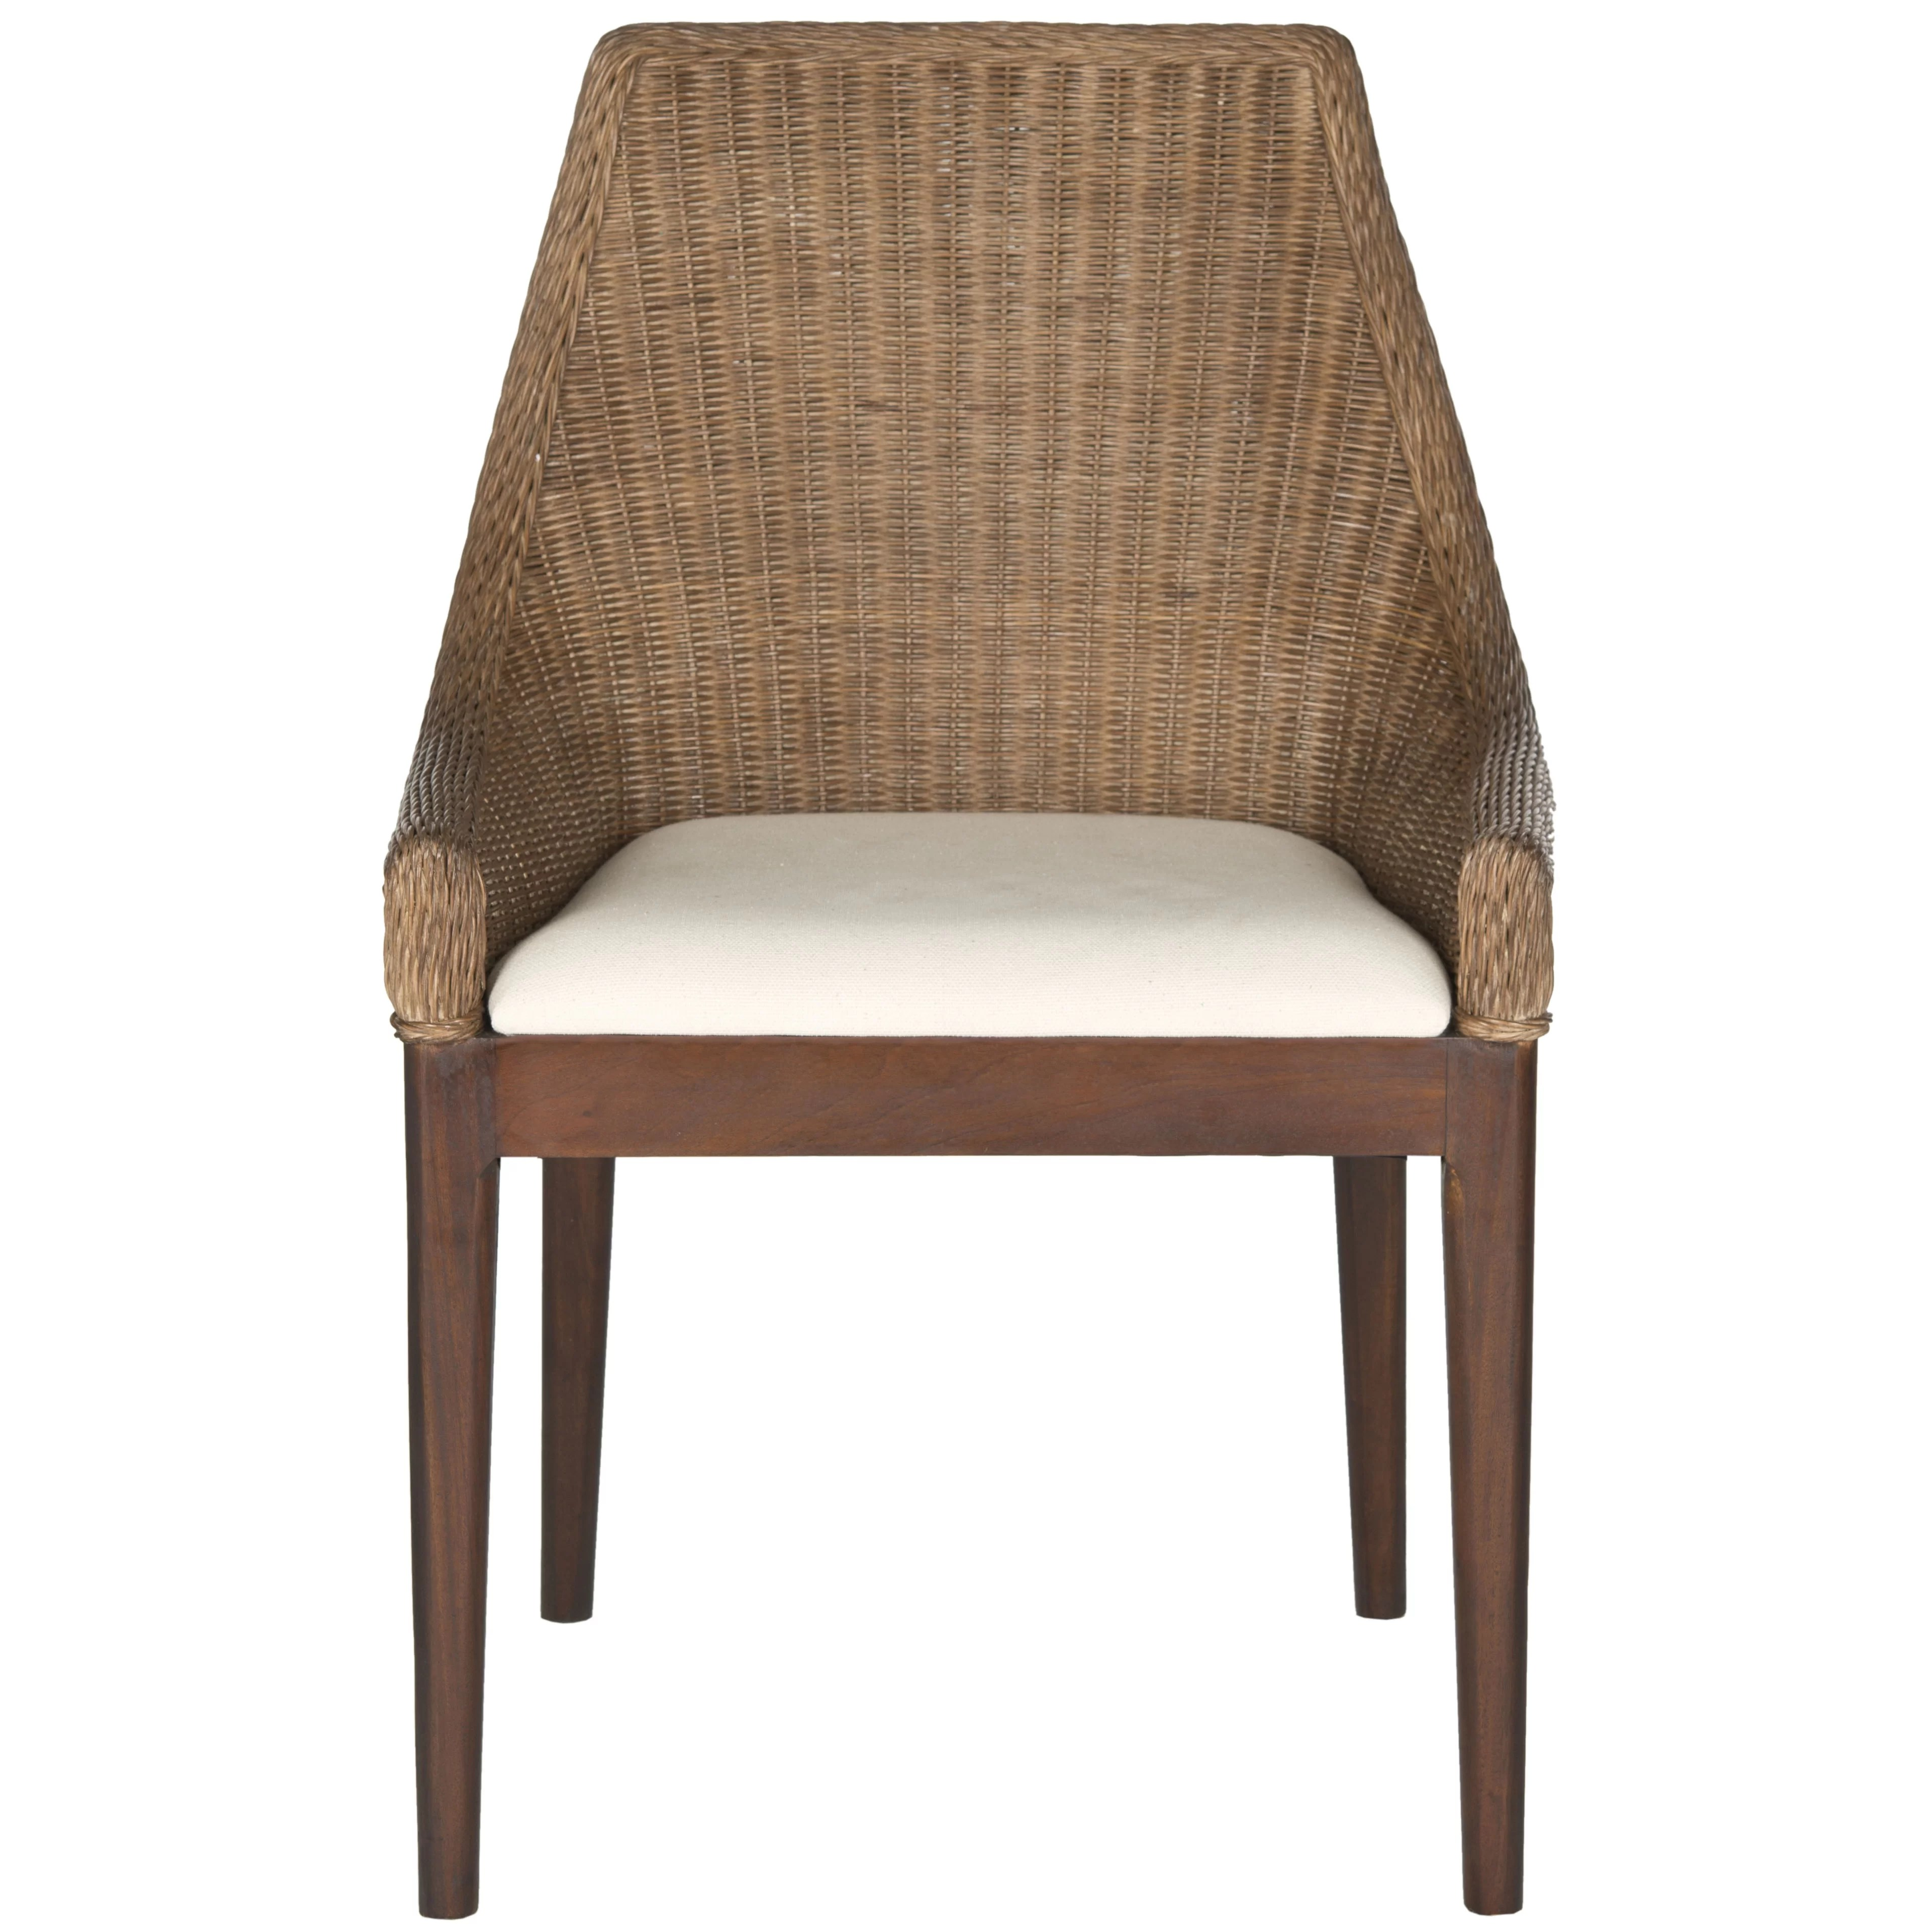 Safavieh Chair Safavieh Franco Sloping Chair And Reviews Wayfair